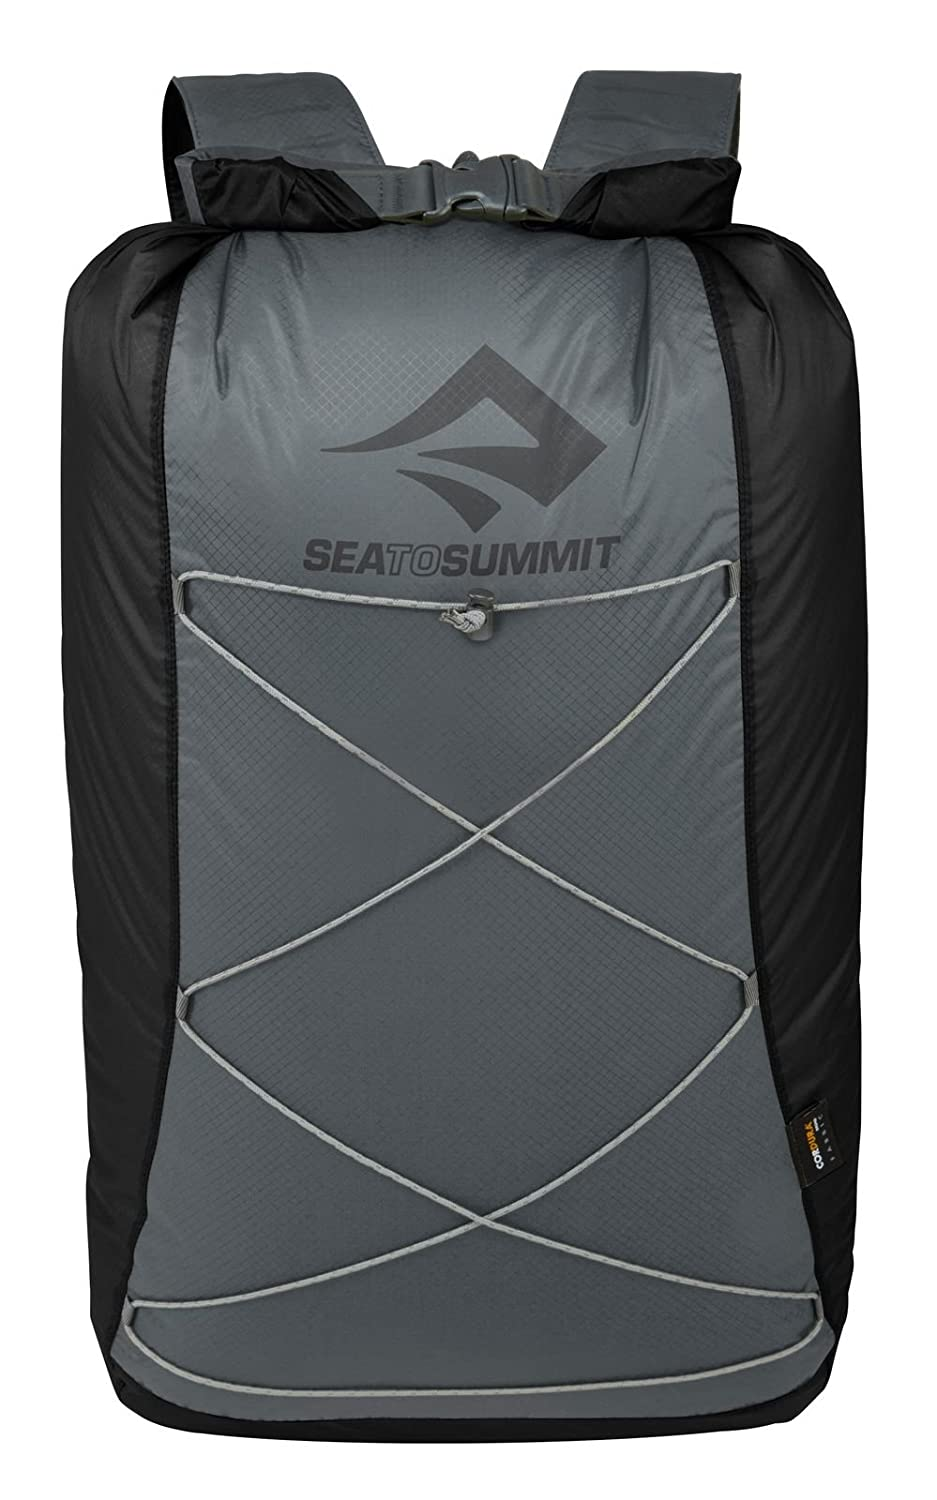 Sea to Summit Ultra-Sil Dry Backpack black 2018 outdoor daypack STS_10705-STS_10705::BLACK